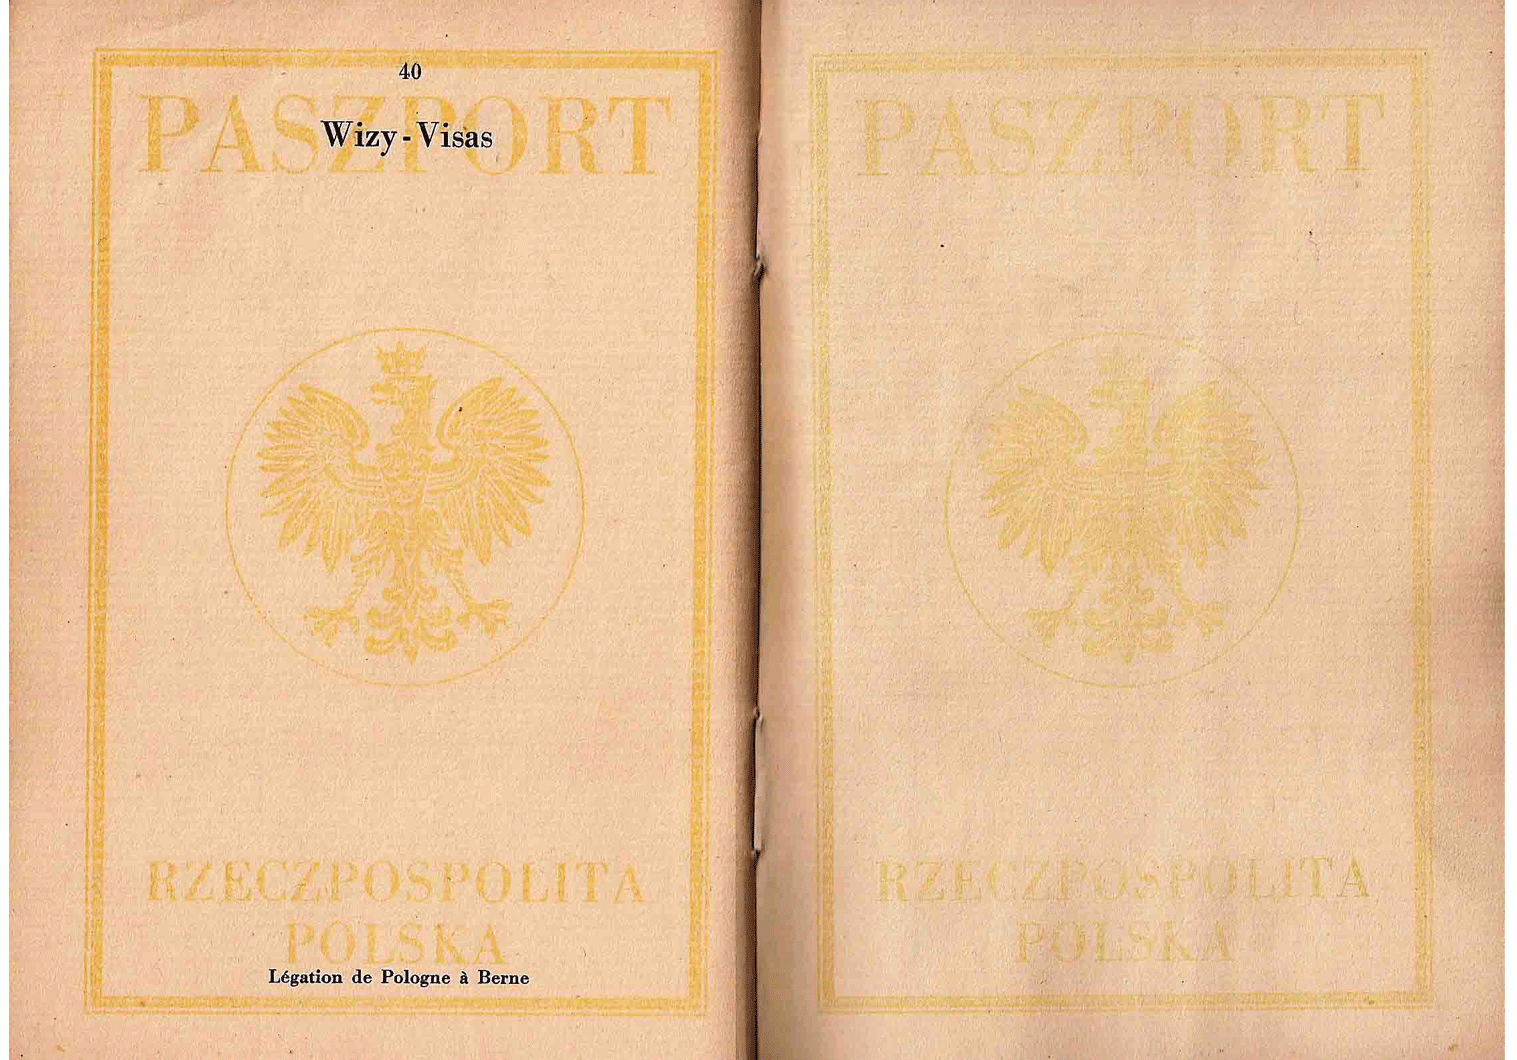 Berne printed Polish Passport.